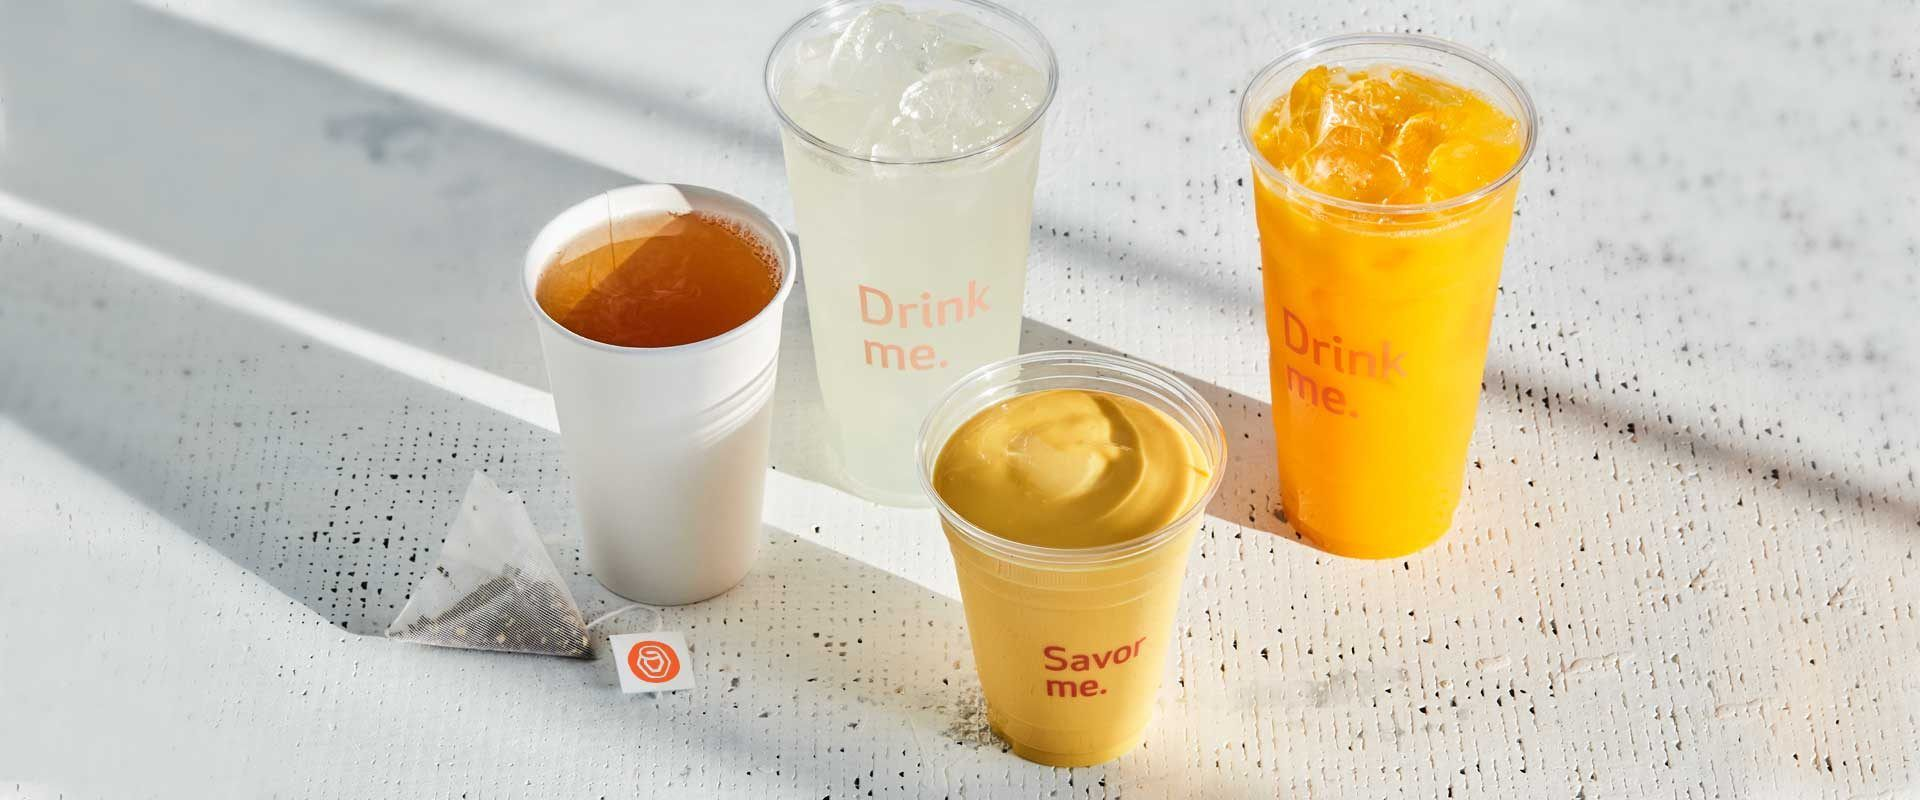 hot organic teas, mint ginger lemonade, mango lemonade and mango lassi on a table